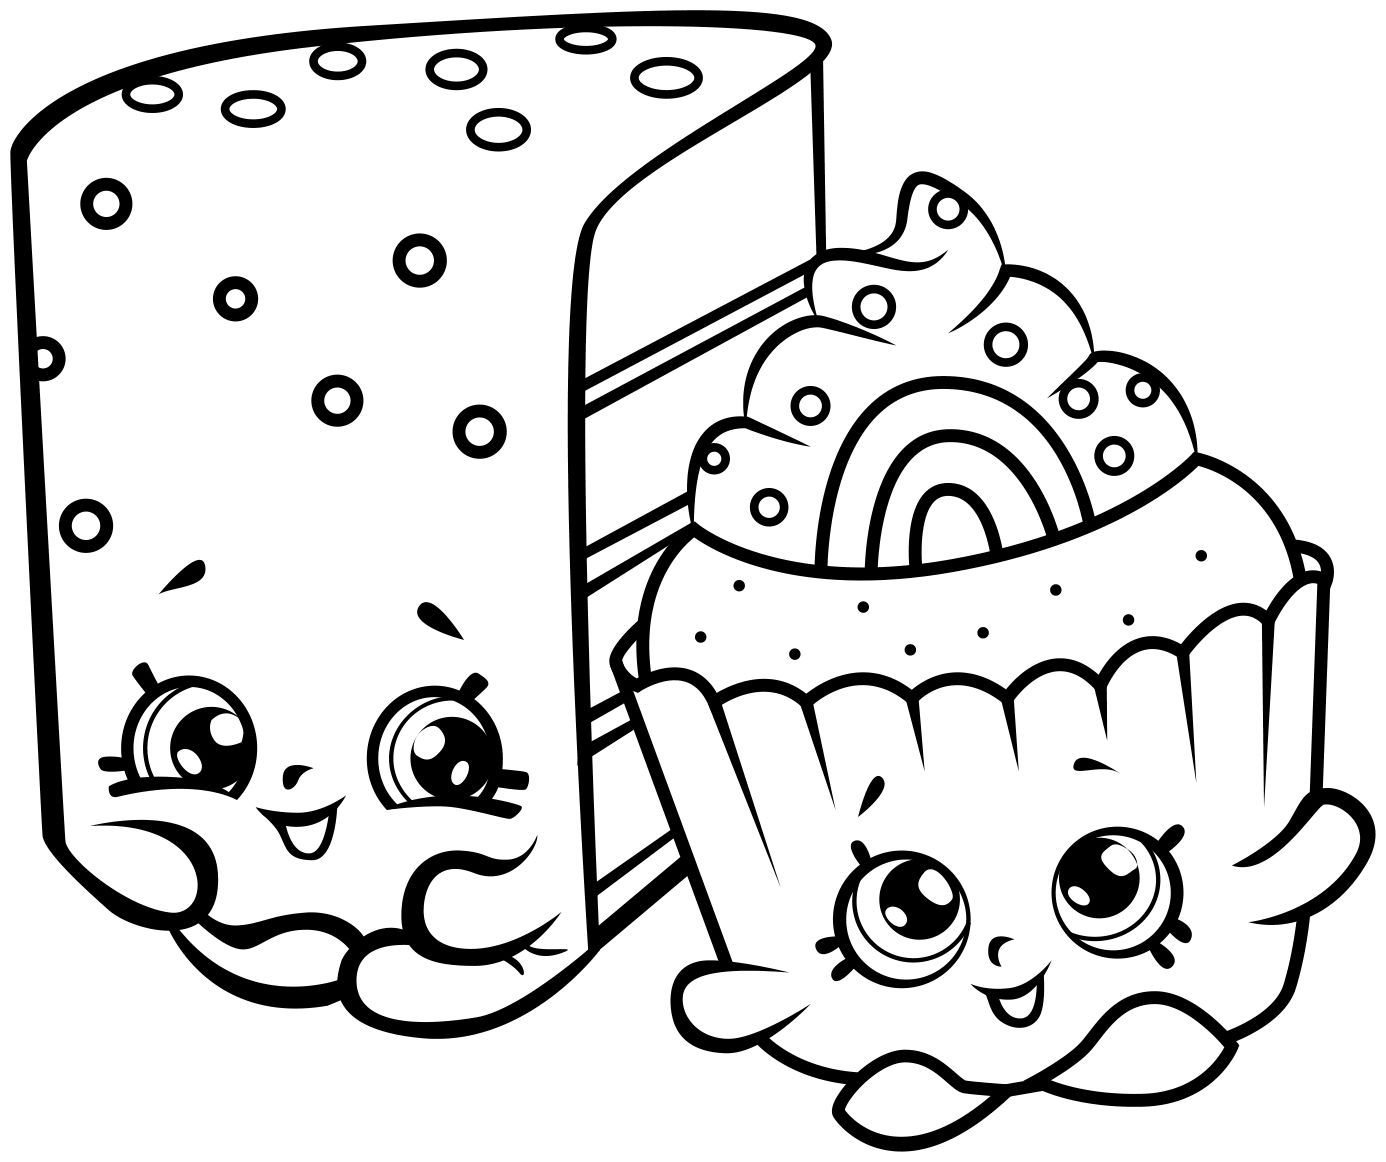 1386x1162 Shopkins Coloring Pages Best Coloring Pages Kids Intended